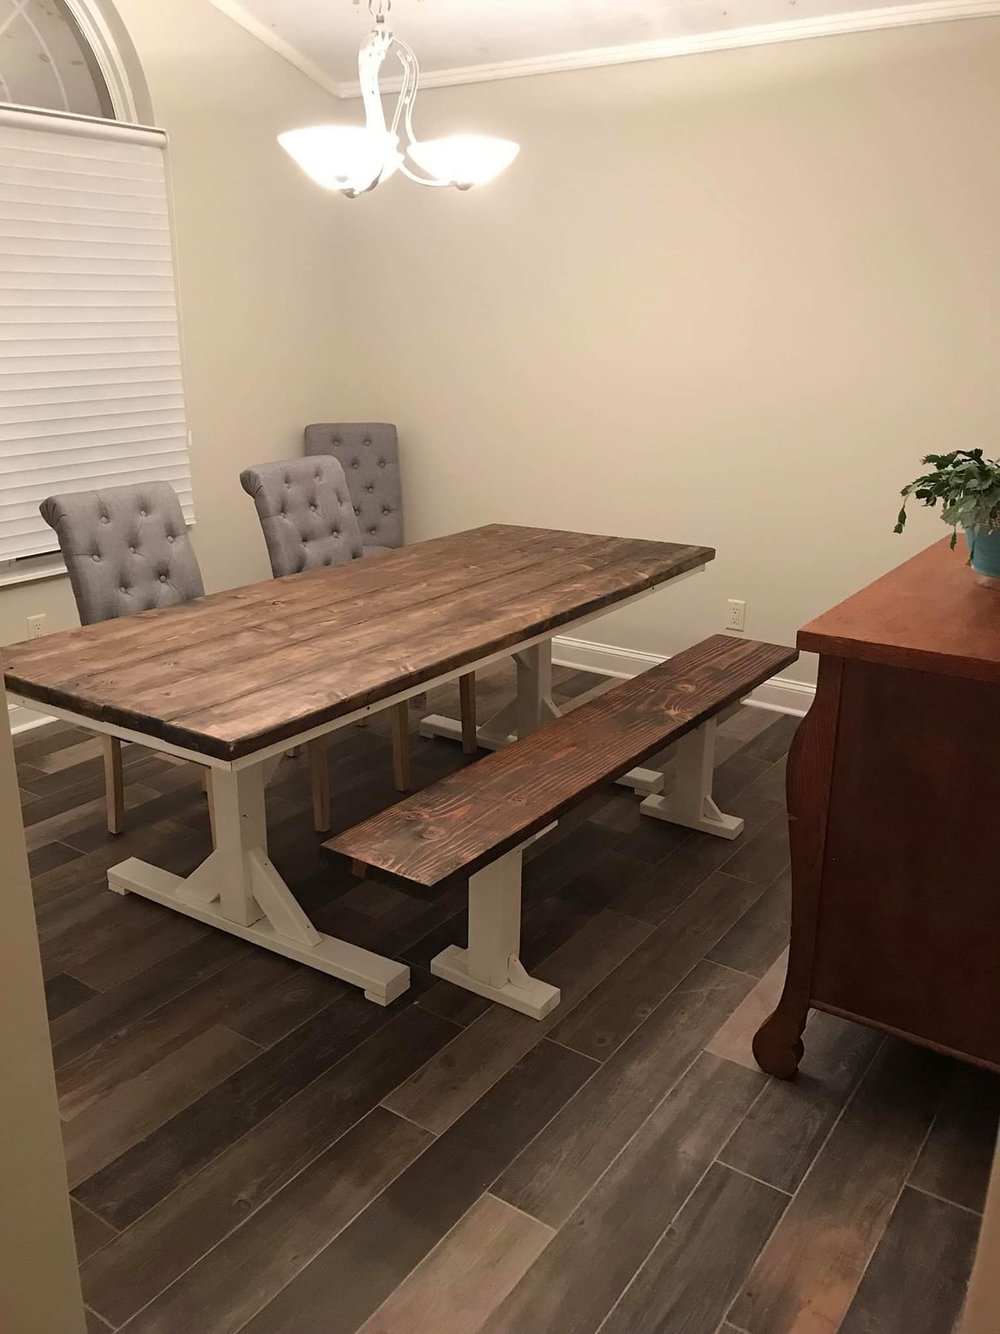 Trestle Style Farmhouse Table - 5 feet x 30 inches- $400+$50/foot- up to 8 feet+$50/extra board- adds 7.5 inches to the width of the tableBenches- $80/each, cut to size to fit your table